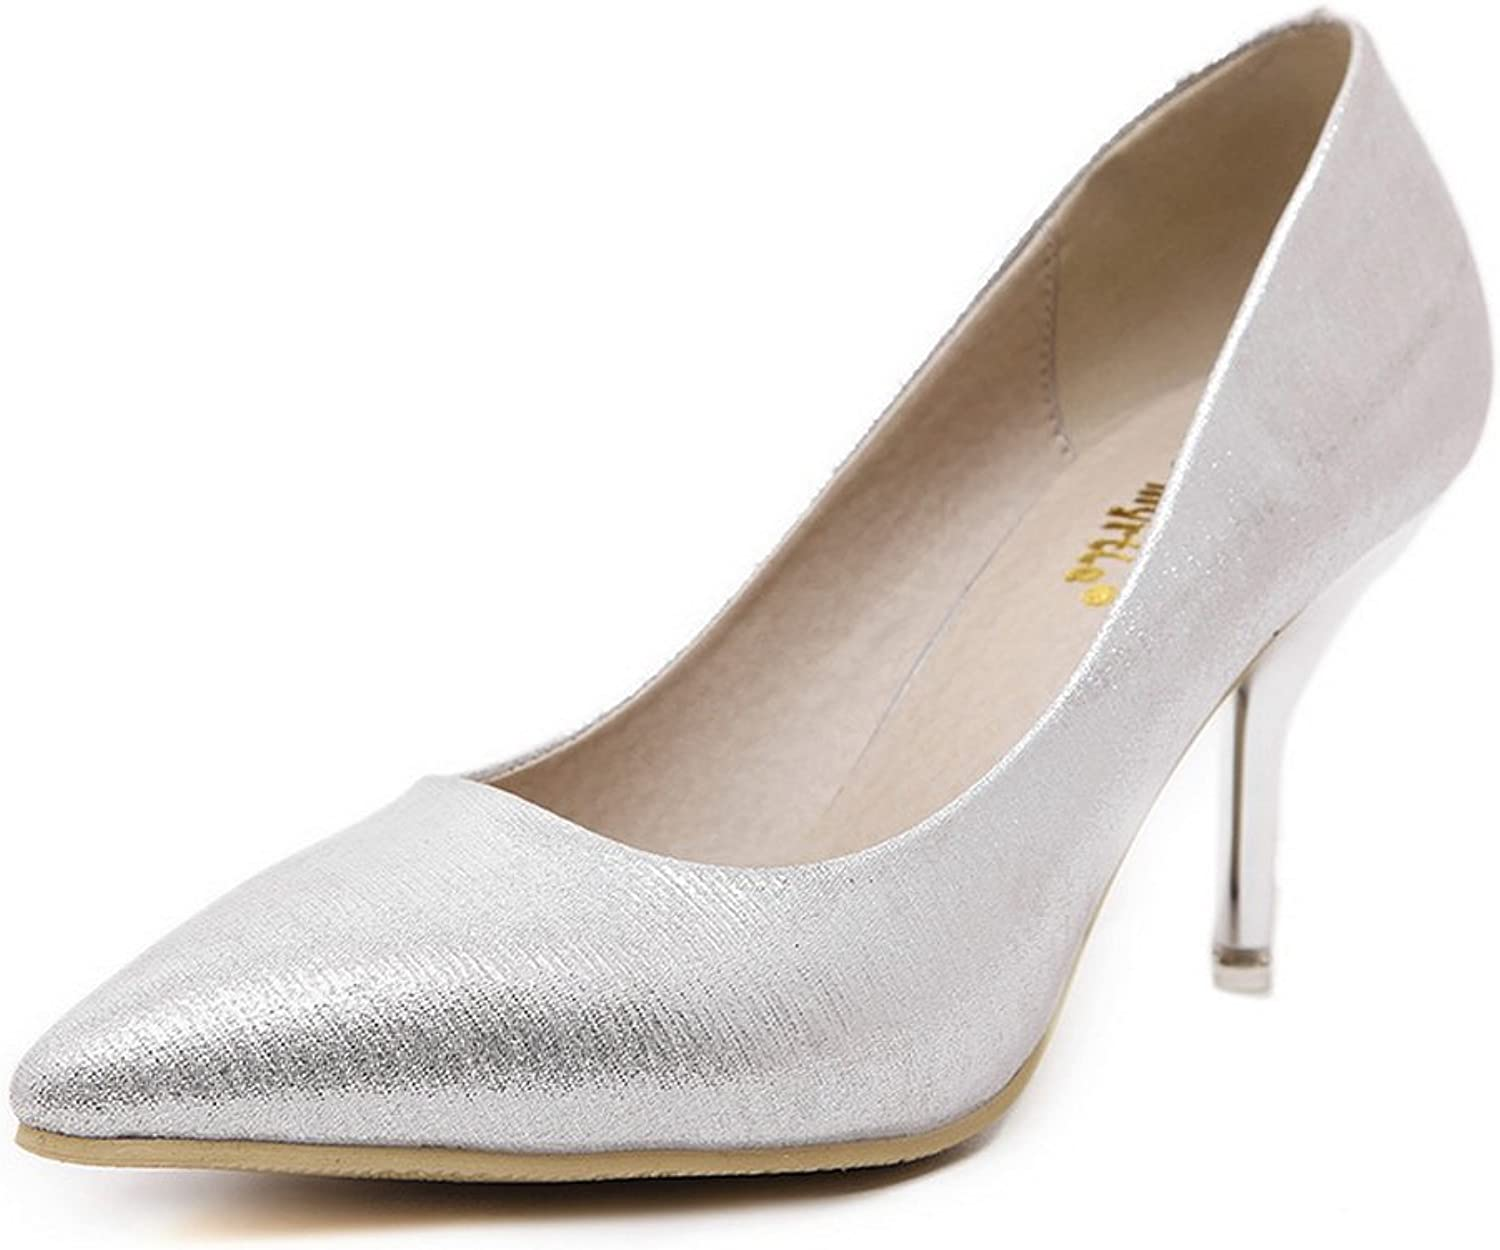 1TO9 Womens Spikes Stilettos Low-Cut Uppers Pointed-Toe Silver Urethane Pumps shoes - 7.5 B(M) US